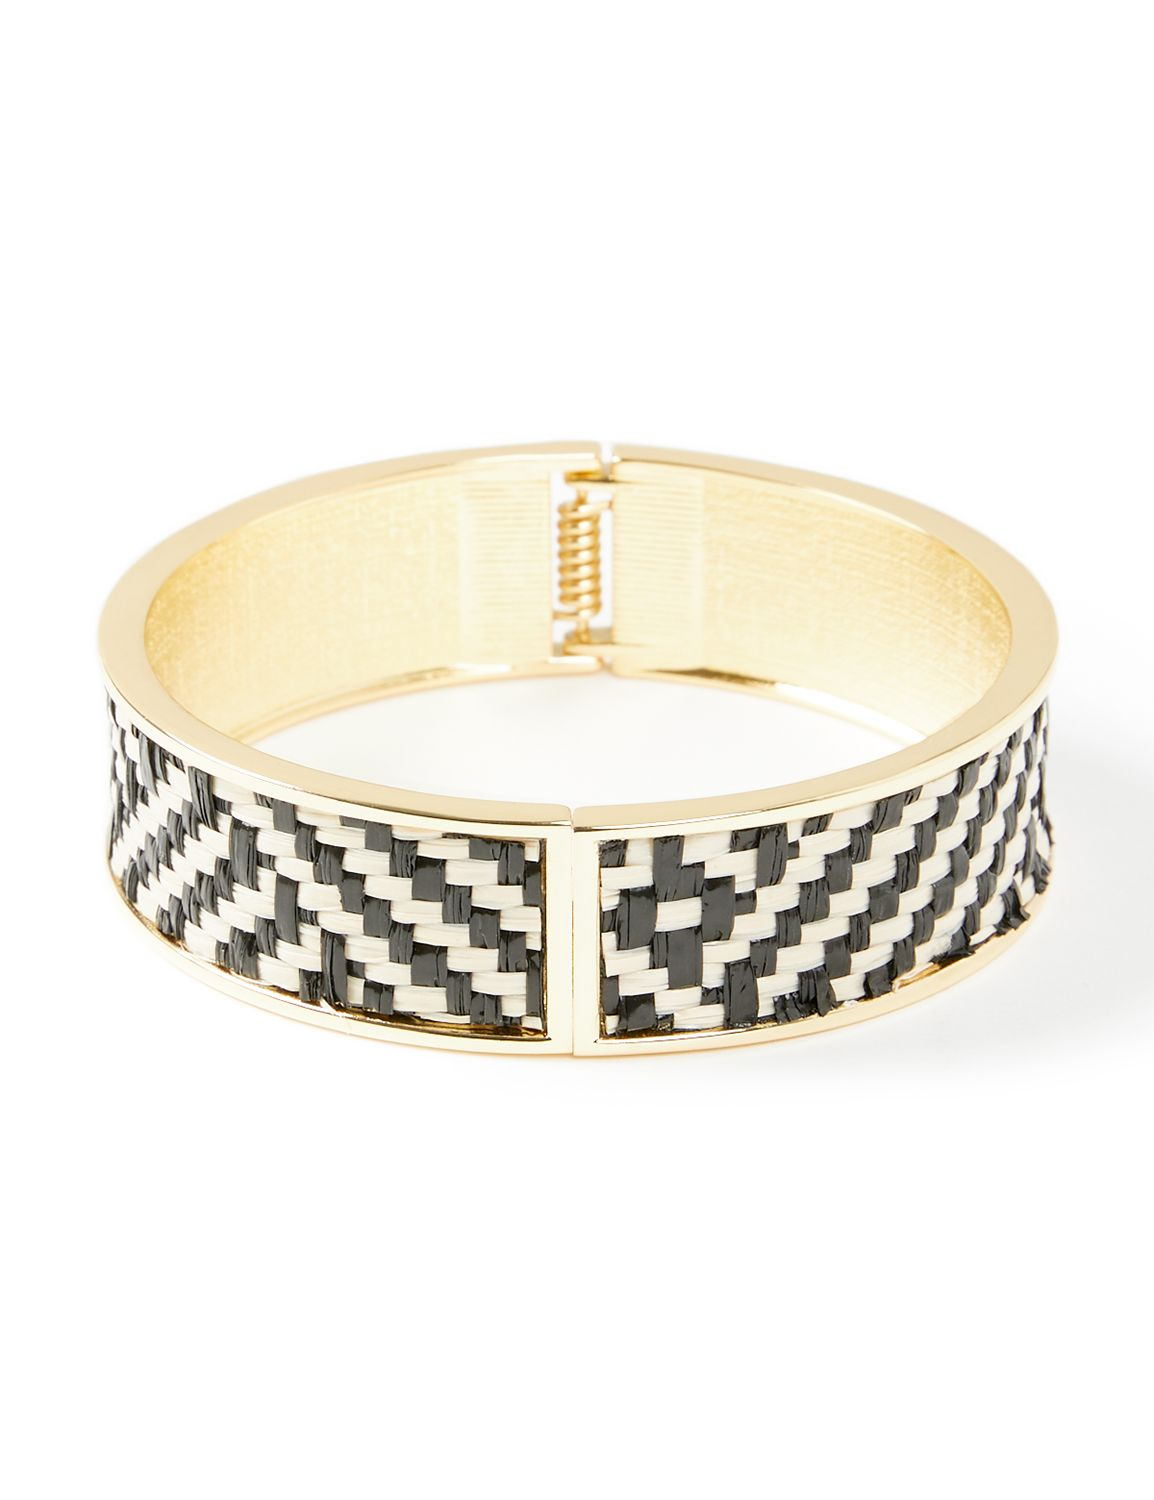 Woven Bangle Bracelet NBF Hinge woven bangle BR KT0721B19 MP-300099220